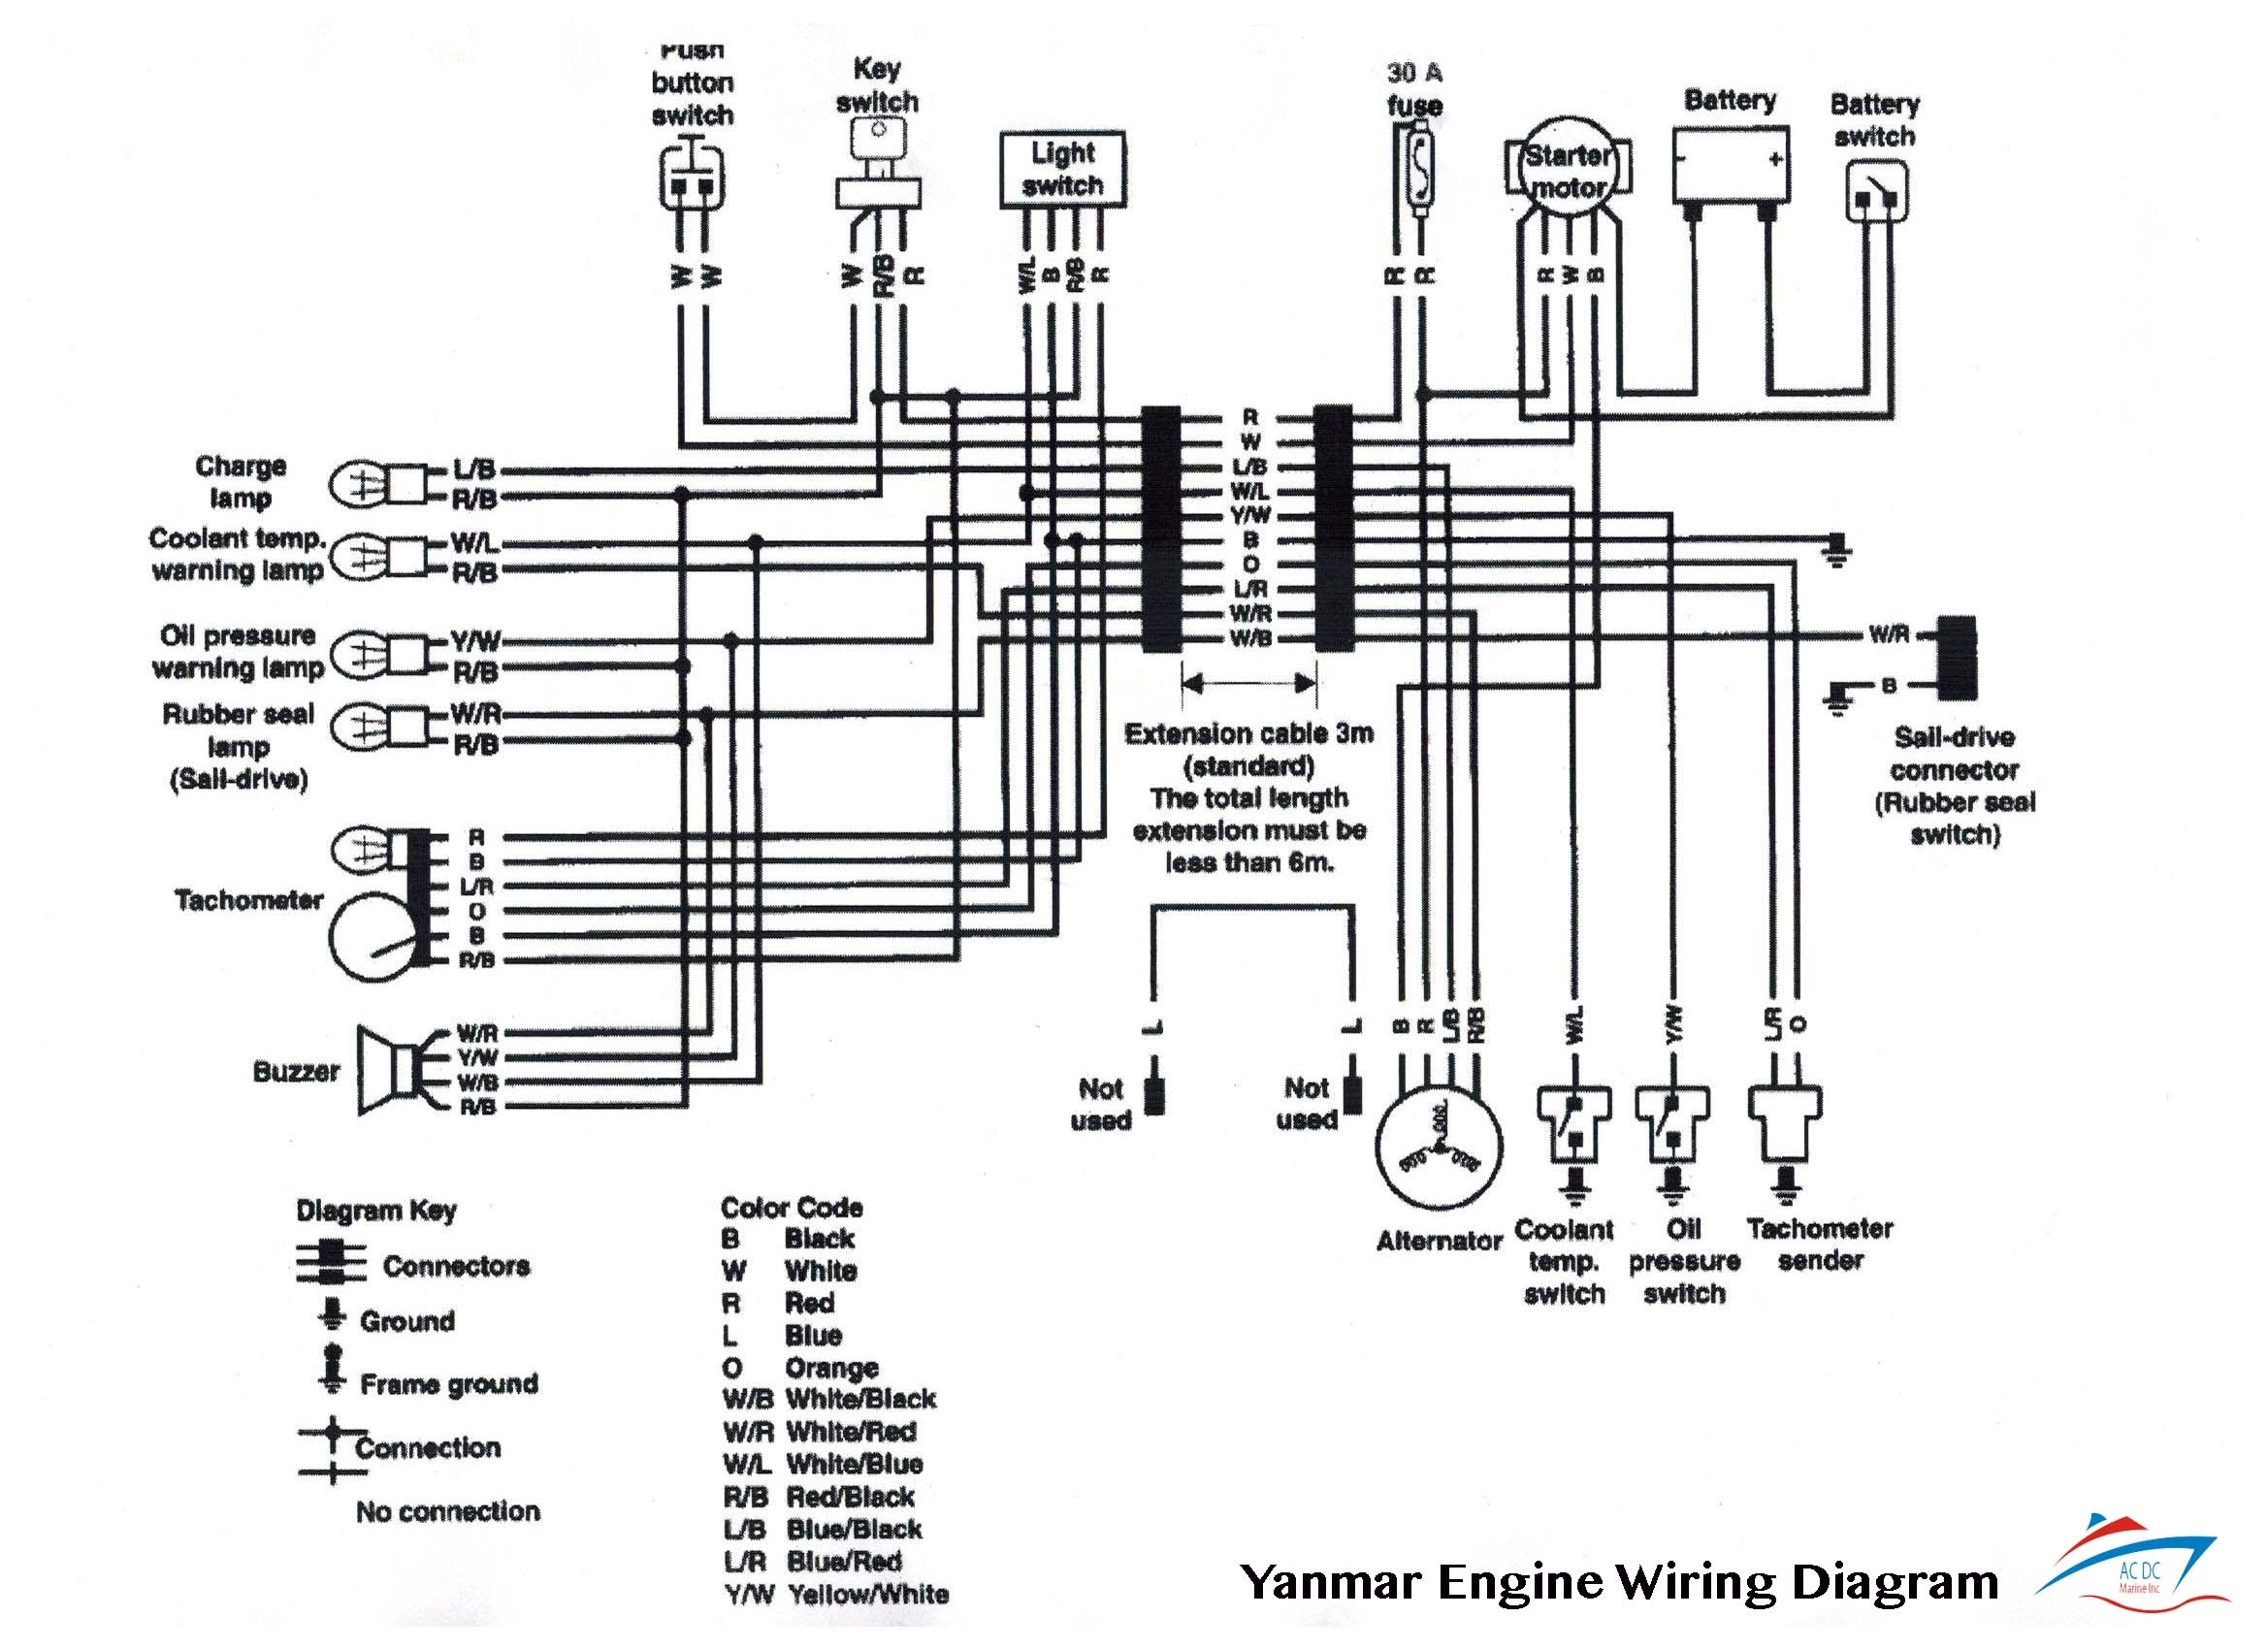 Wiring Harness Diagram On Tachometer Wiring Diagram For 89 Corvette